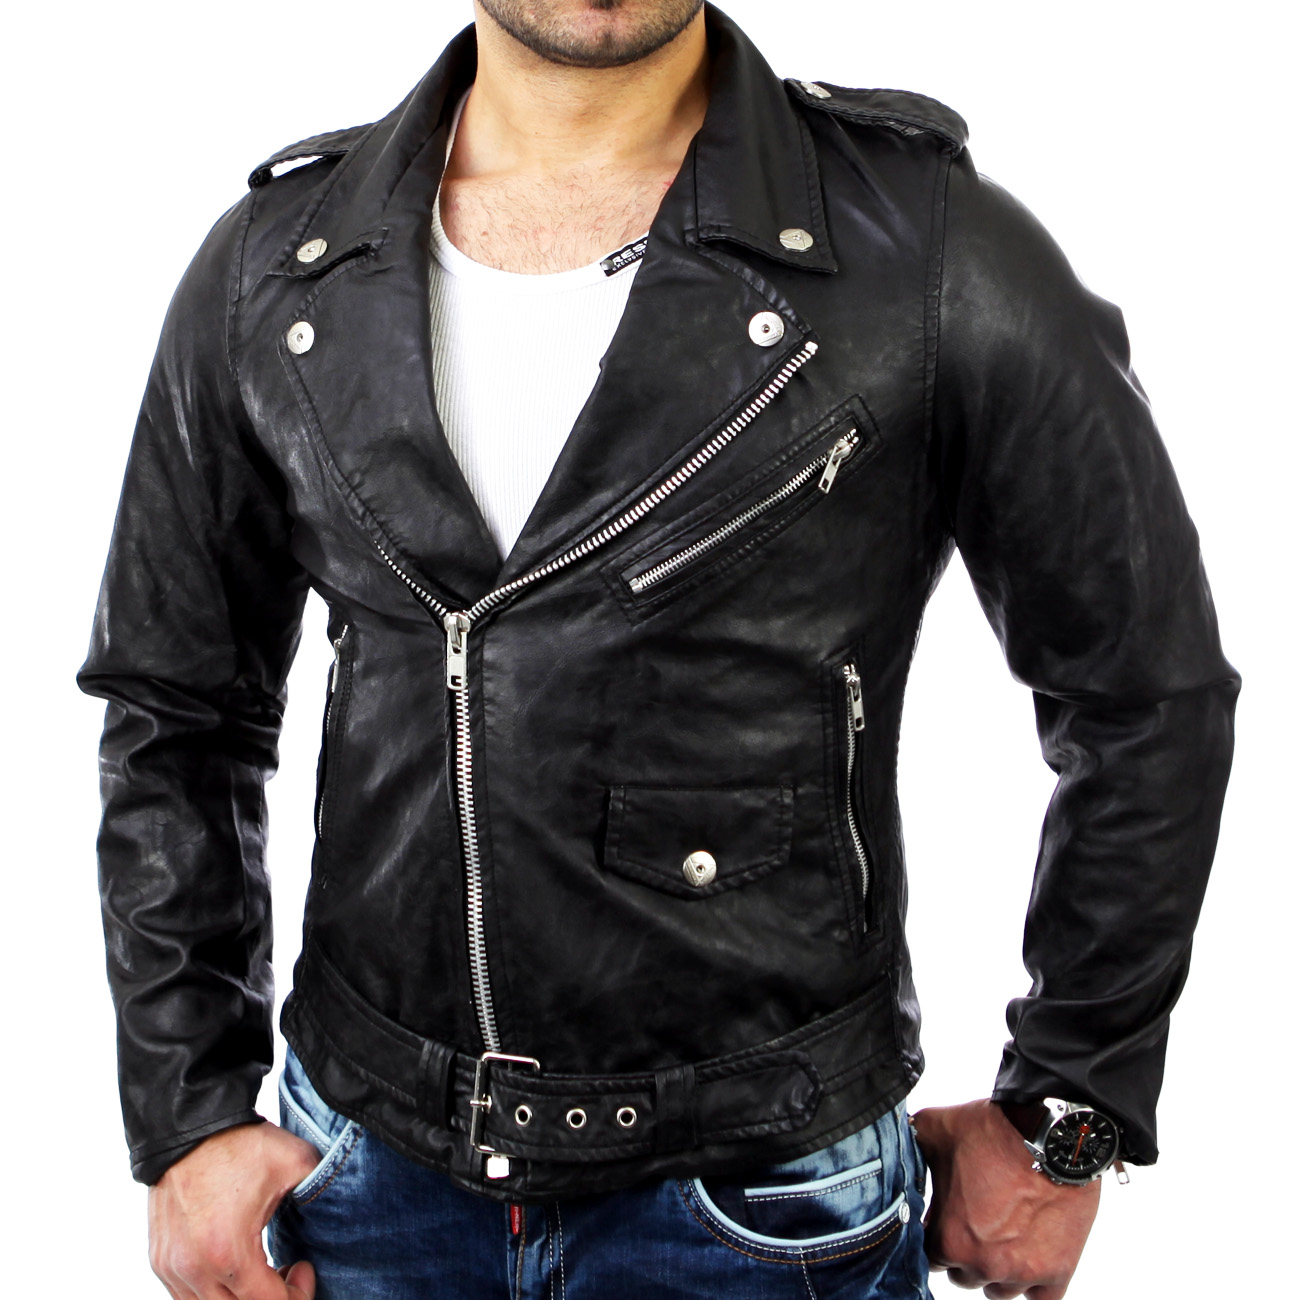 reslad herren biker jacke zipper kunst lederjacke rs 7769 schwarz neu ebay. Black Bedroom Furniture Sets. Home Design Ideas